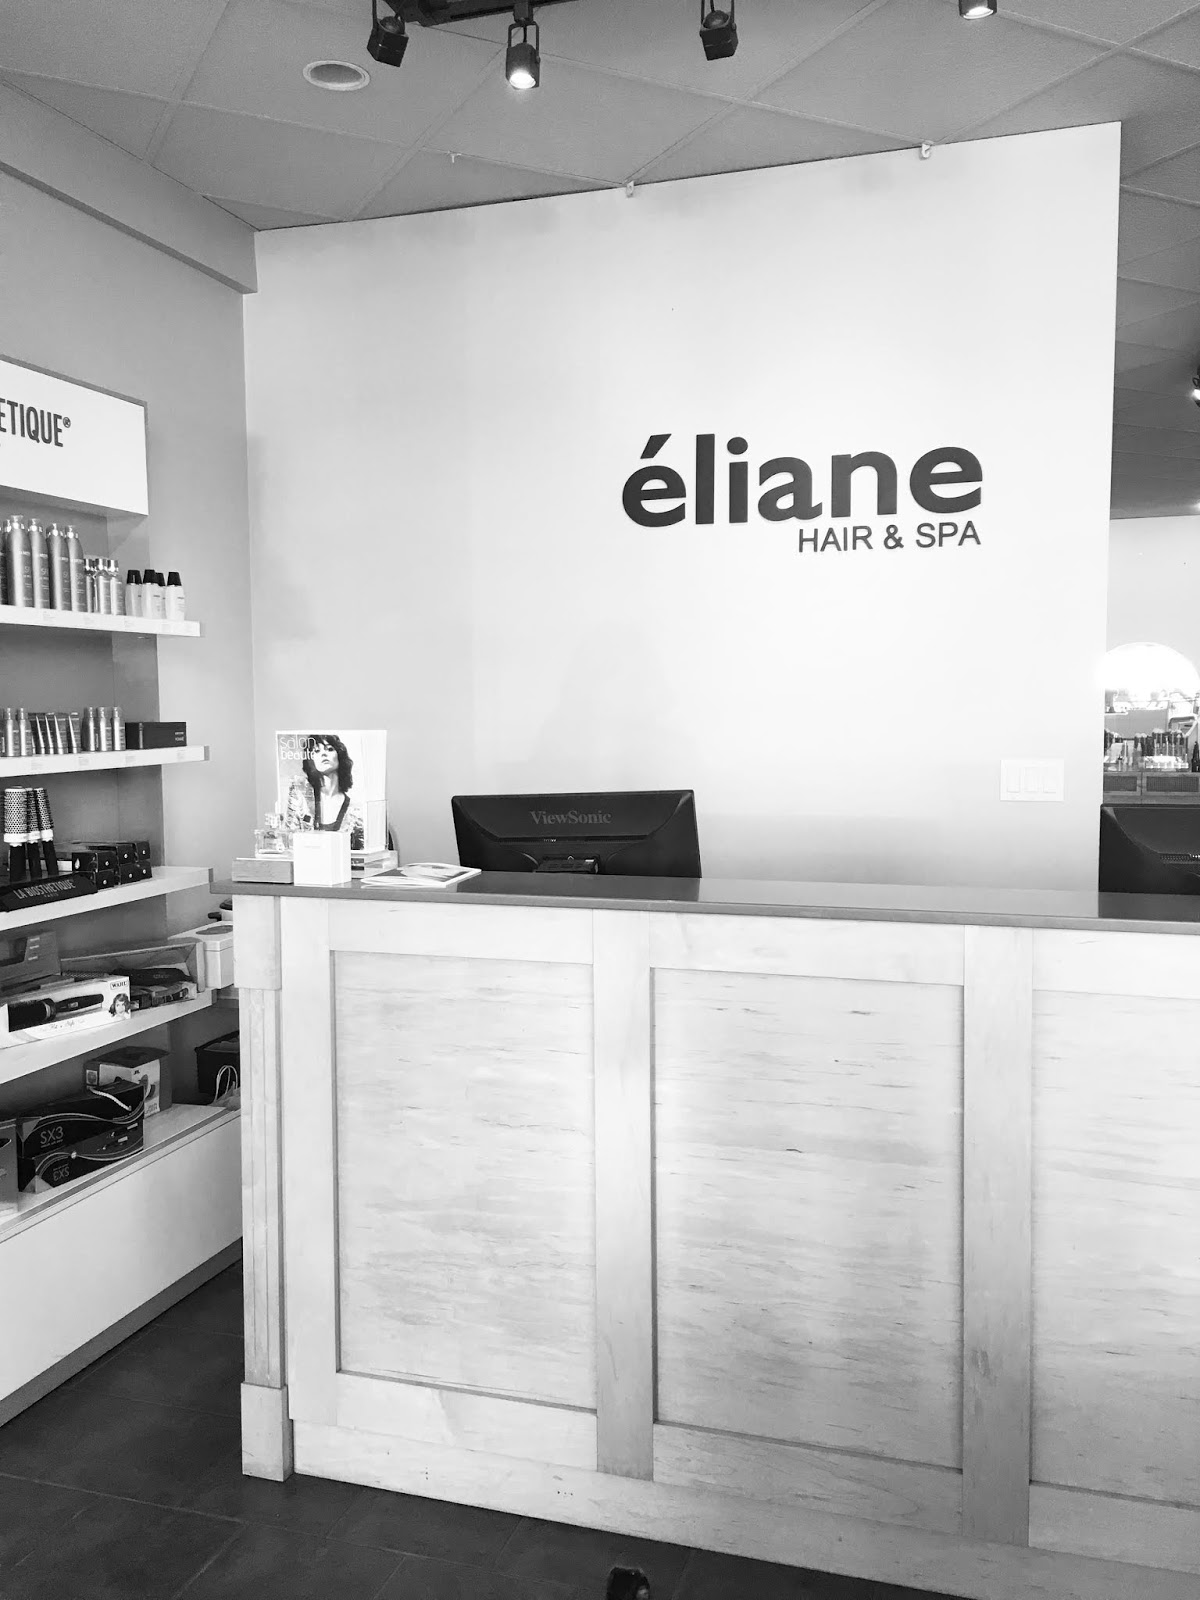 Eliane Hair & Spa welcome desk